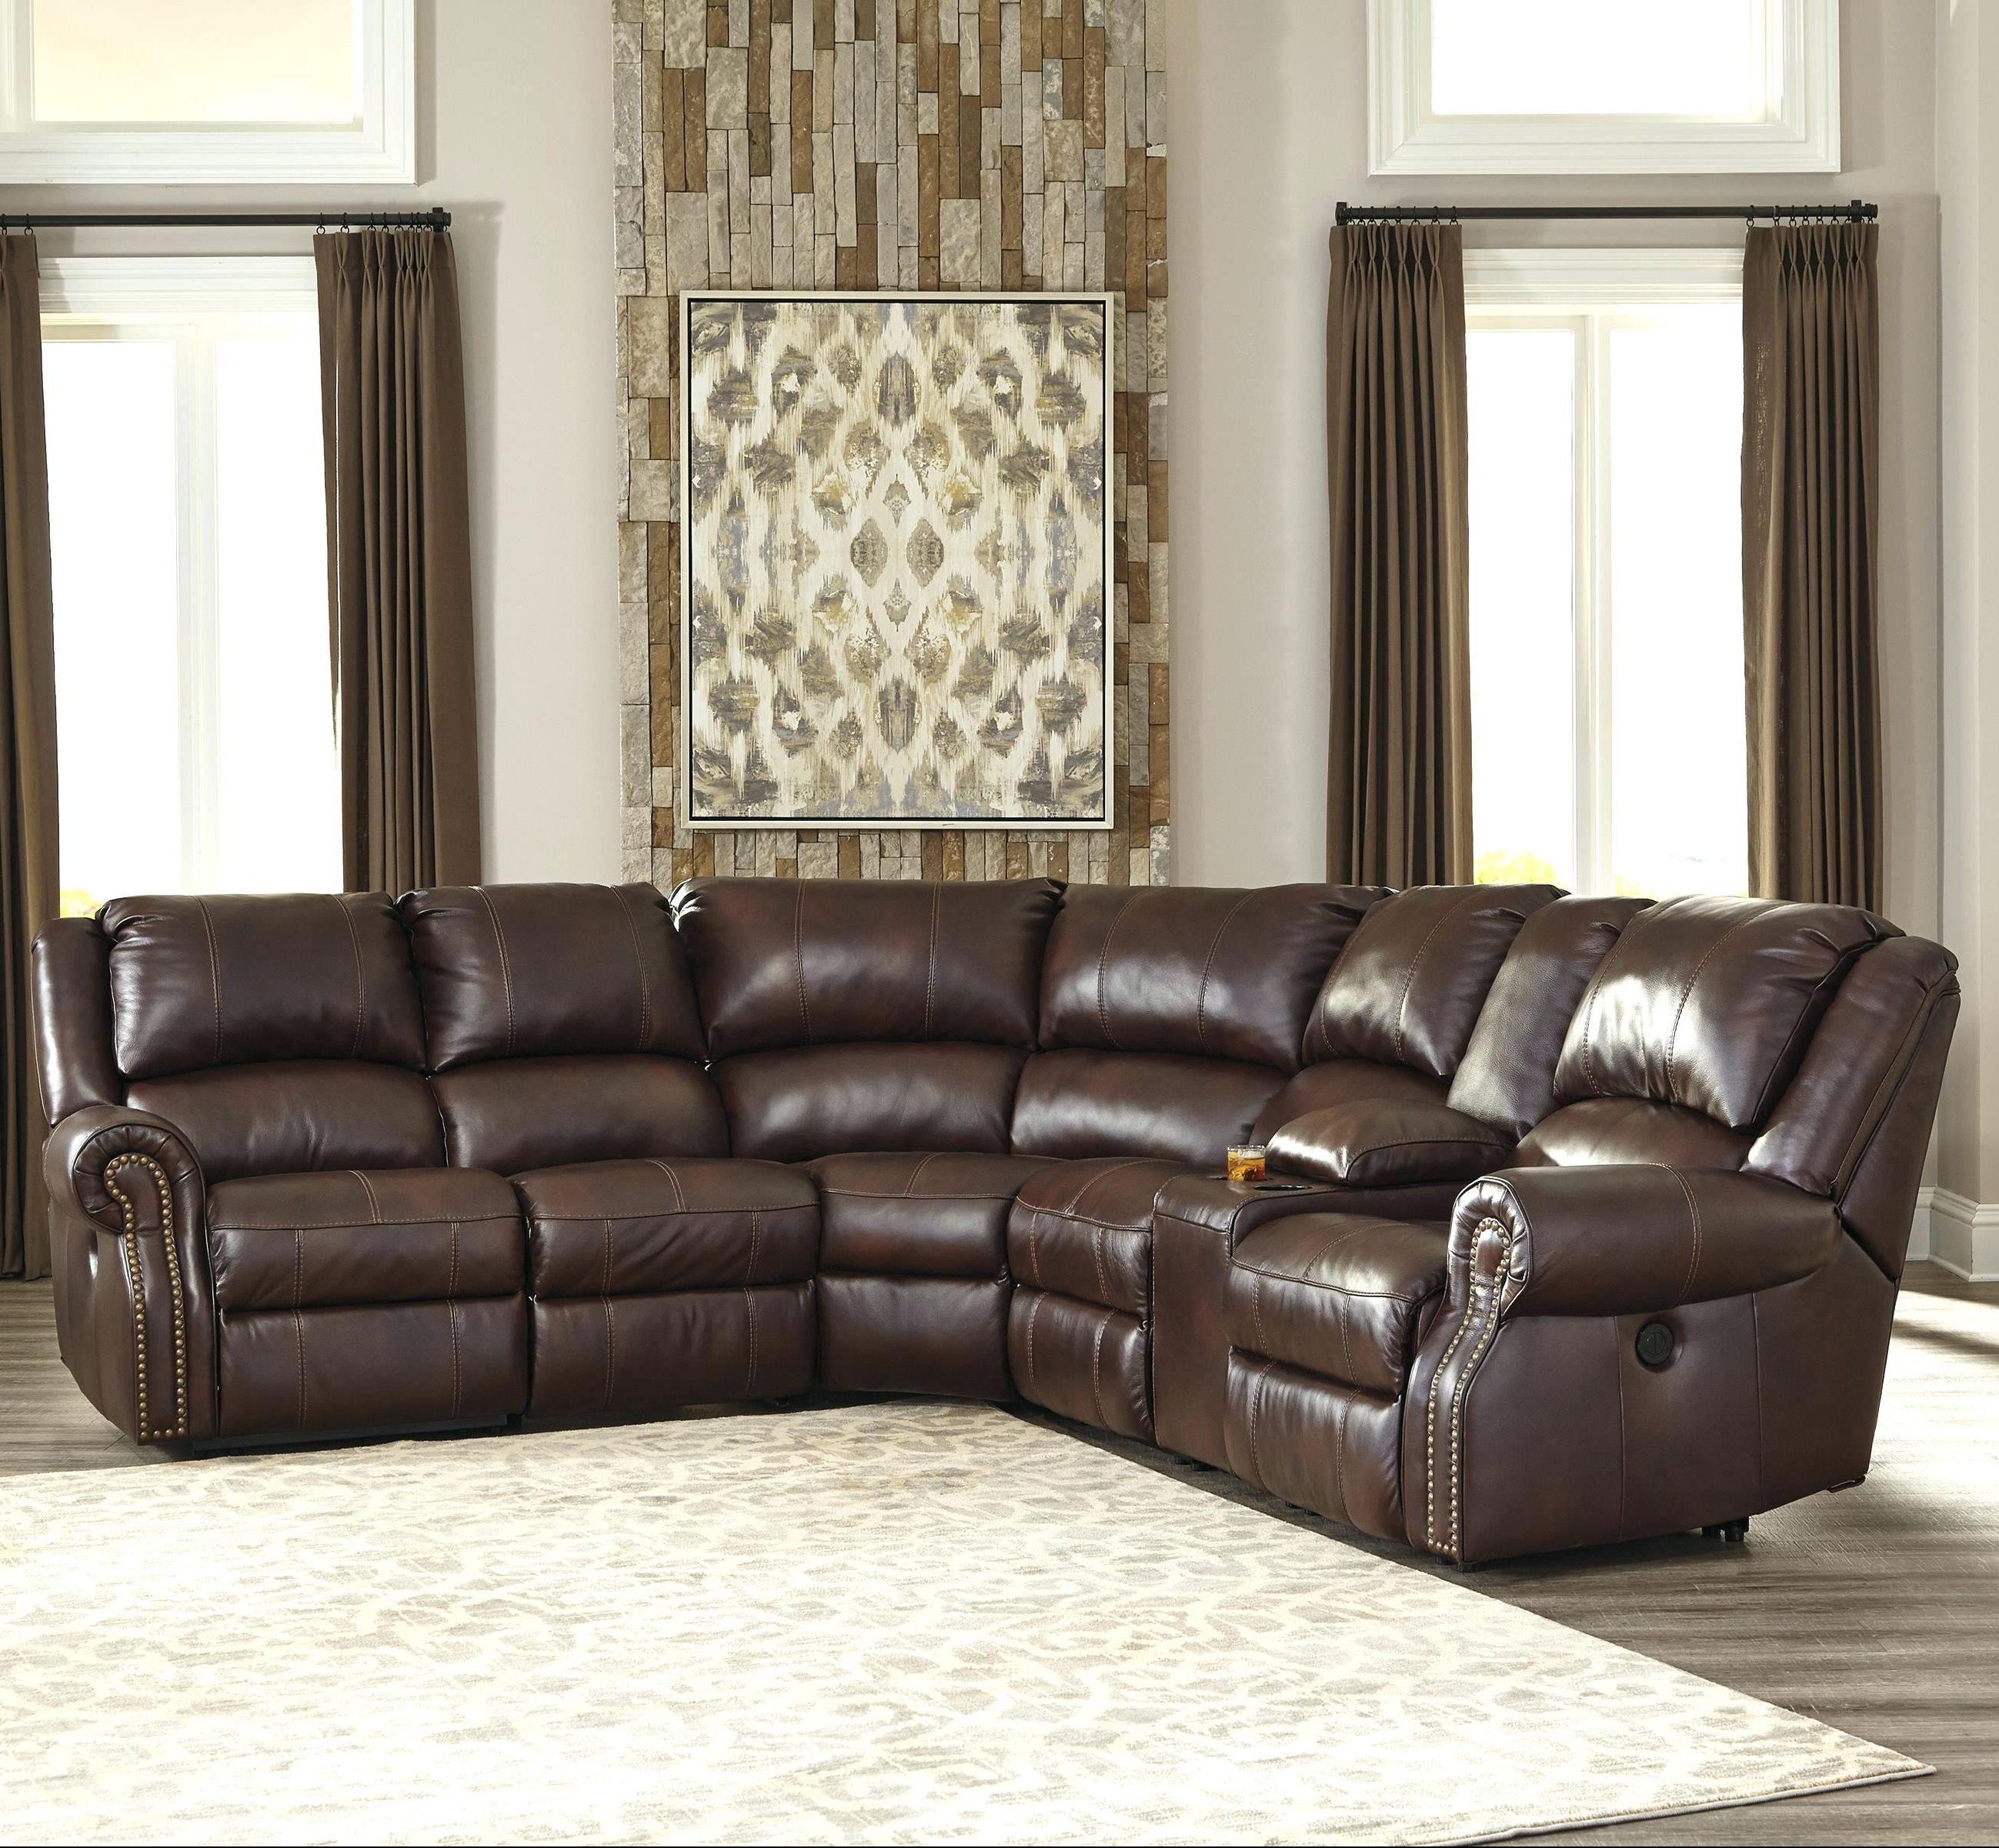 Well Known 6 Piece Leather Sectional Sofas With Regard To Stacey Leather Sectional Sofa (View 14 of 15)